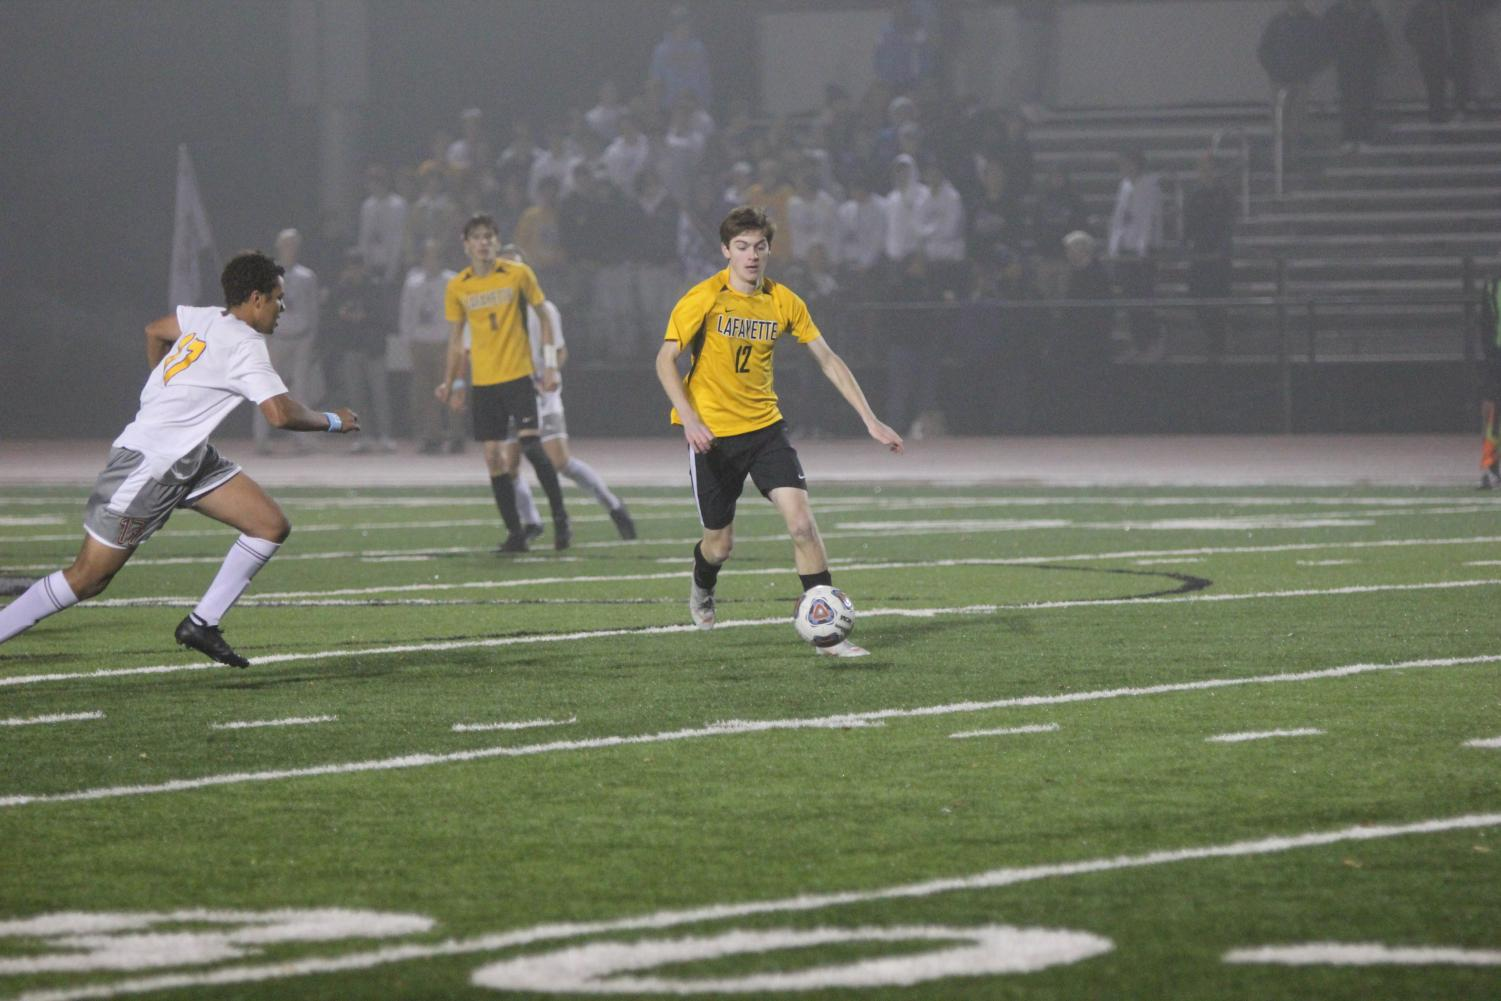 In the District Final, junior Mitchell Grant outruns a CBC defender. The Lancers lost the game, 1-0 in overtime, and ended the season with a record of 18-7-1.